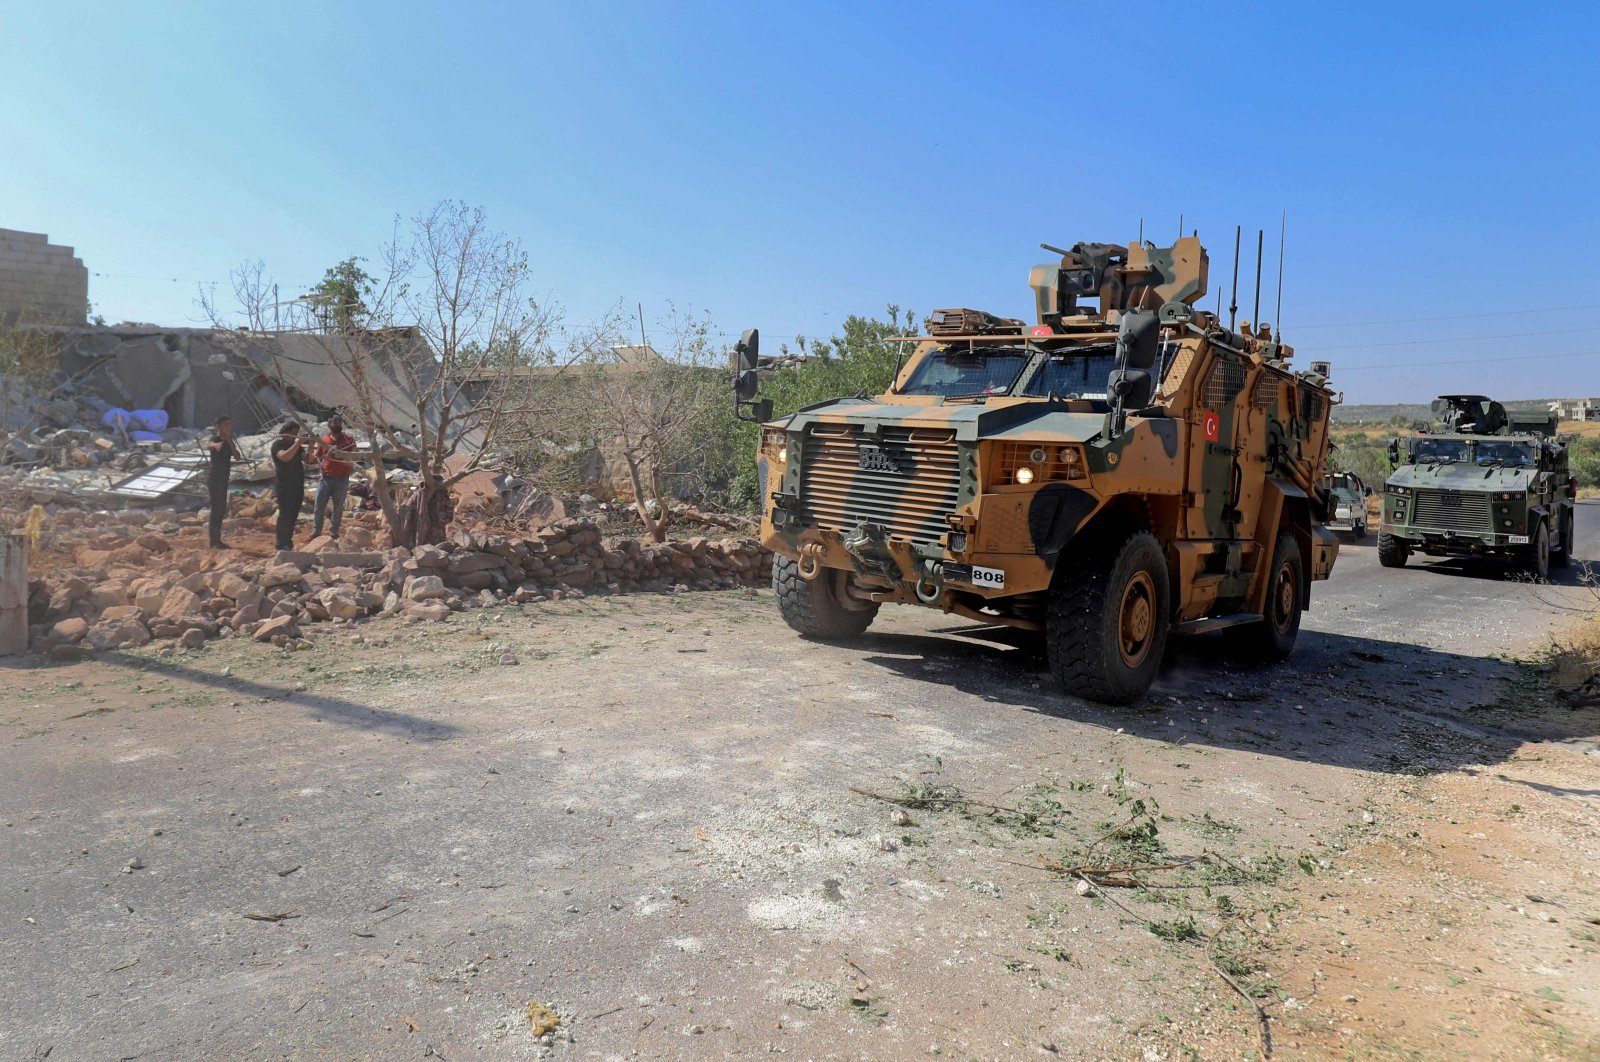 Turkish troops in armored personnel carriers arrive at the scene of a reported regime artillery shelling, in the village of Iblin in the Jabal al-Zawiya region of Syria's opposition-held northwestern Idlib province, July 22, 2021. (AFP Photo)